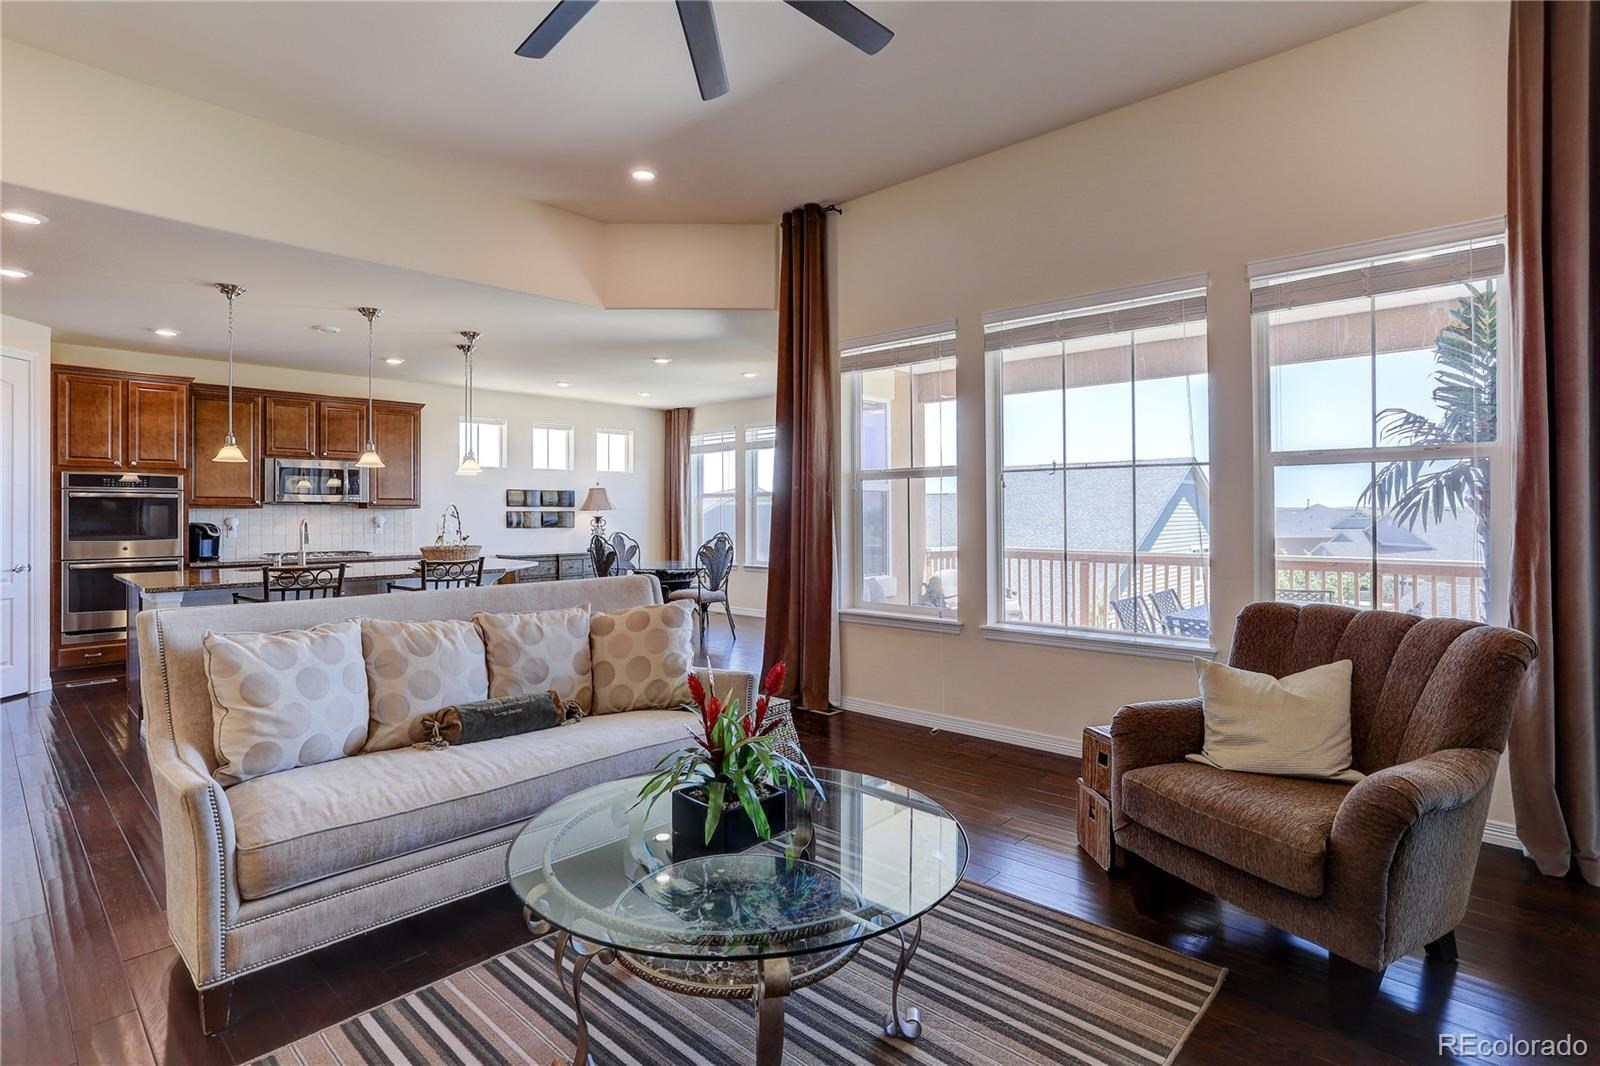 MLS# 8545425 - 3 - 7598 S Country Club Parkway, Aurora, CO 80016